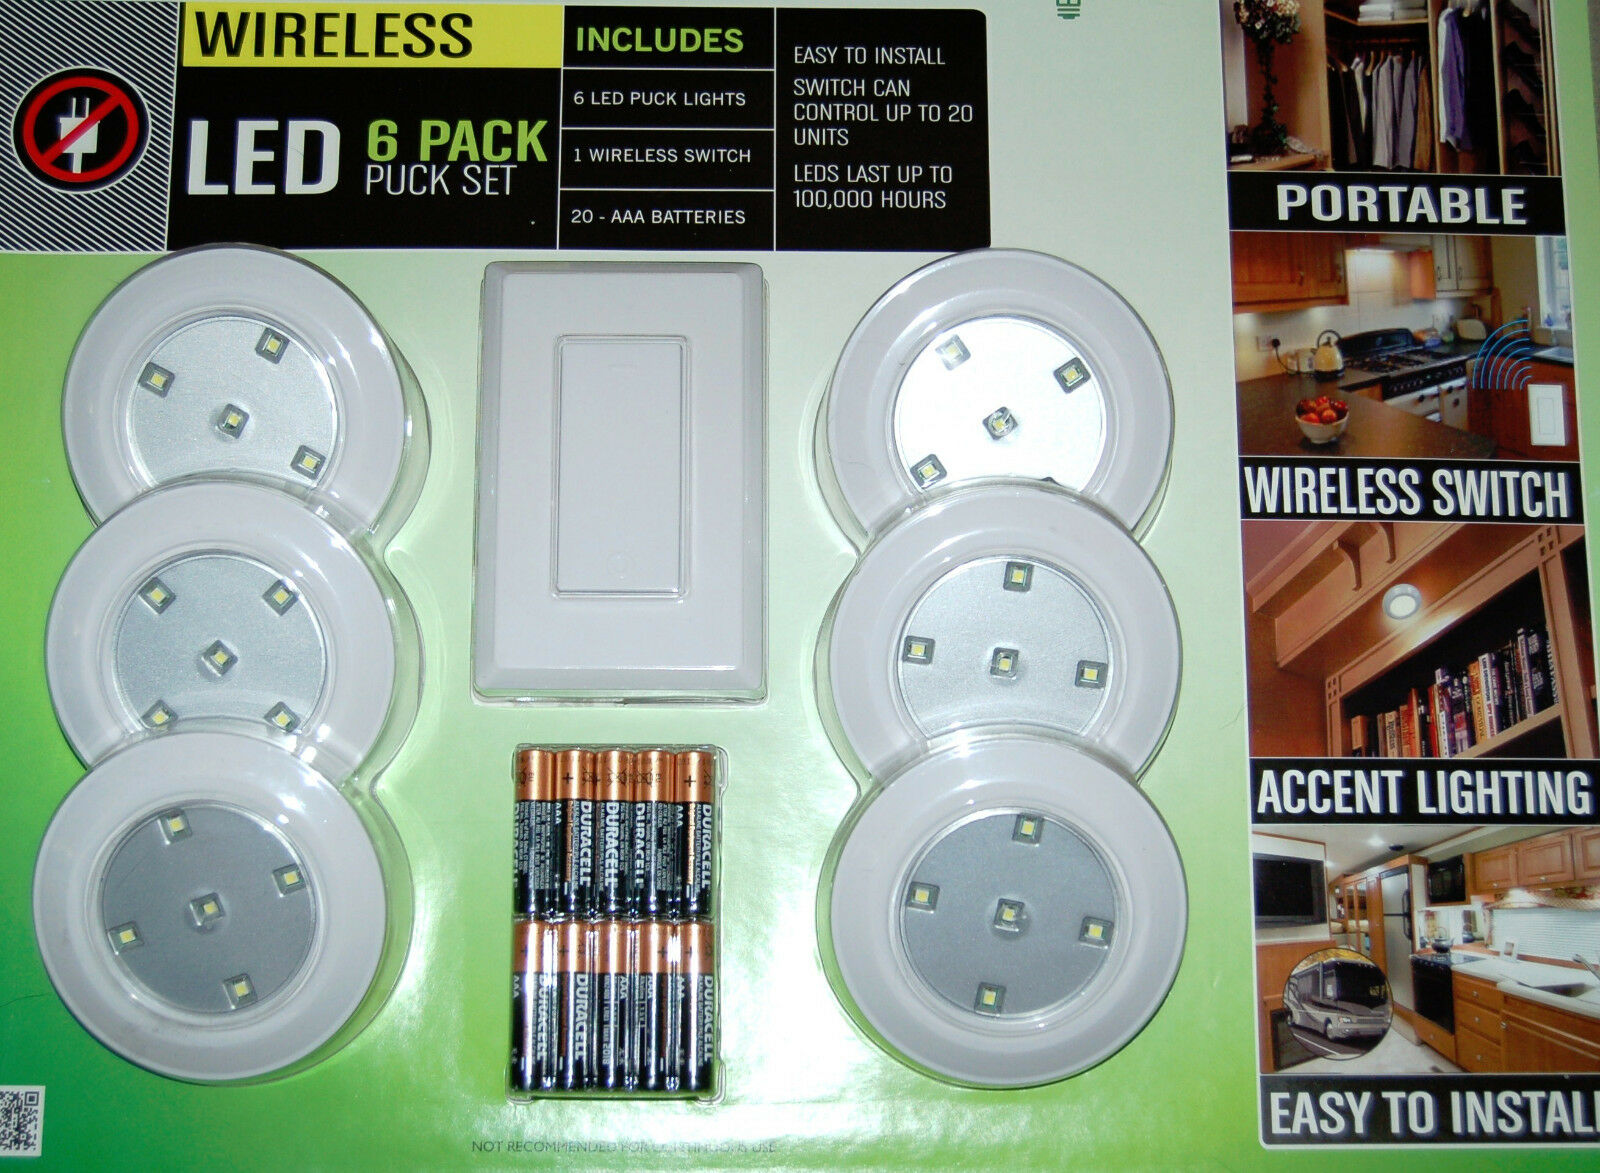 Lightmates led wireless puck lights with remote batteries 6 pack ebay resntentobalflowflowcomponenttechnicalissues aloadofball Gallery